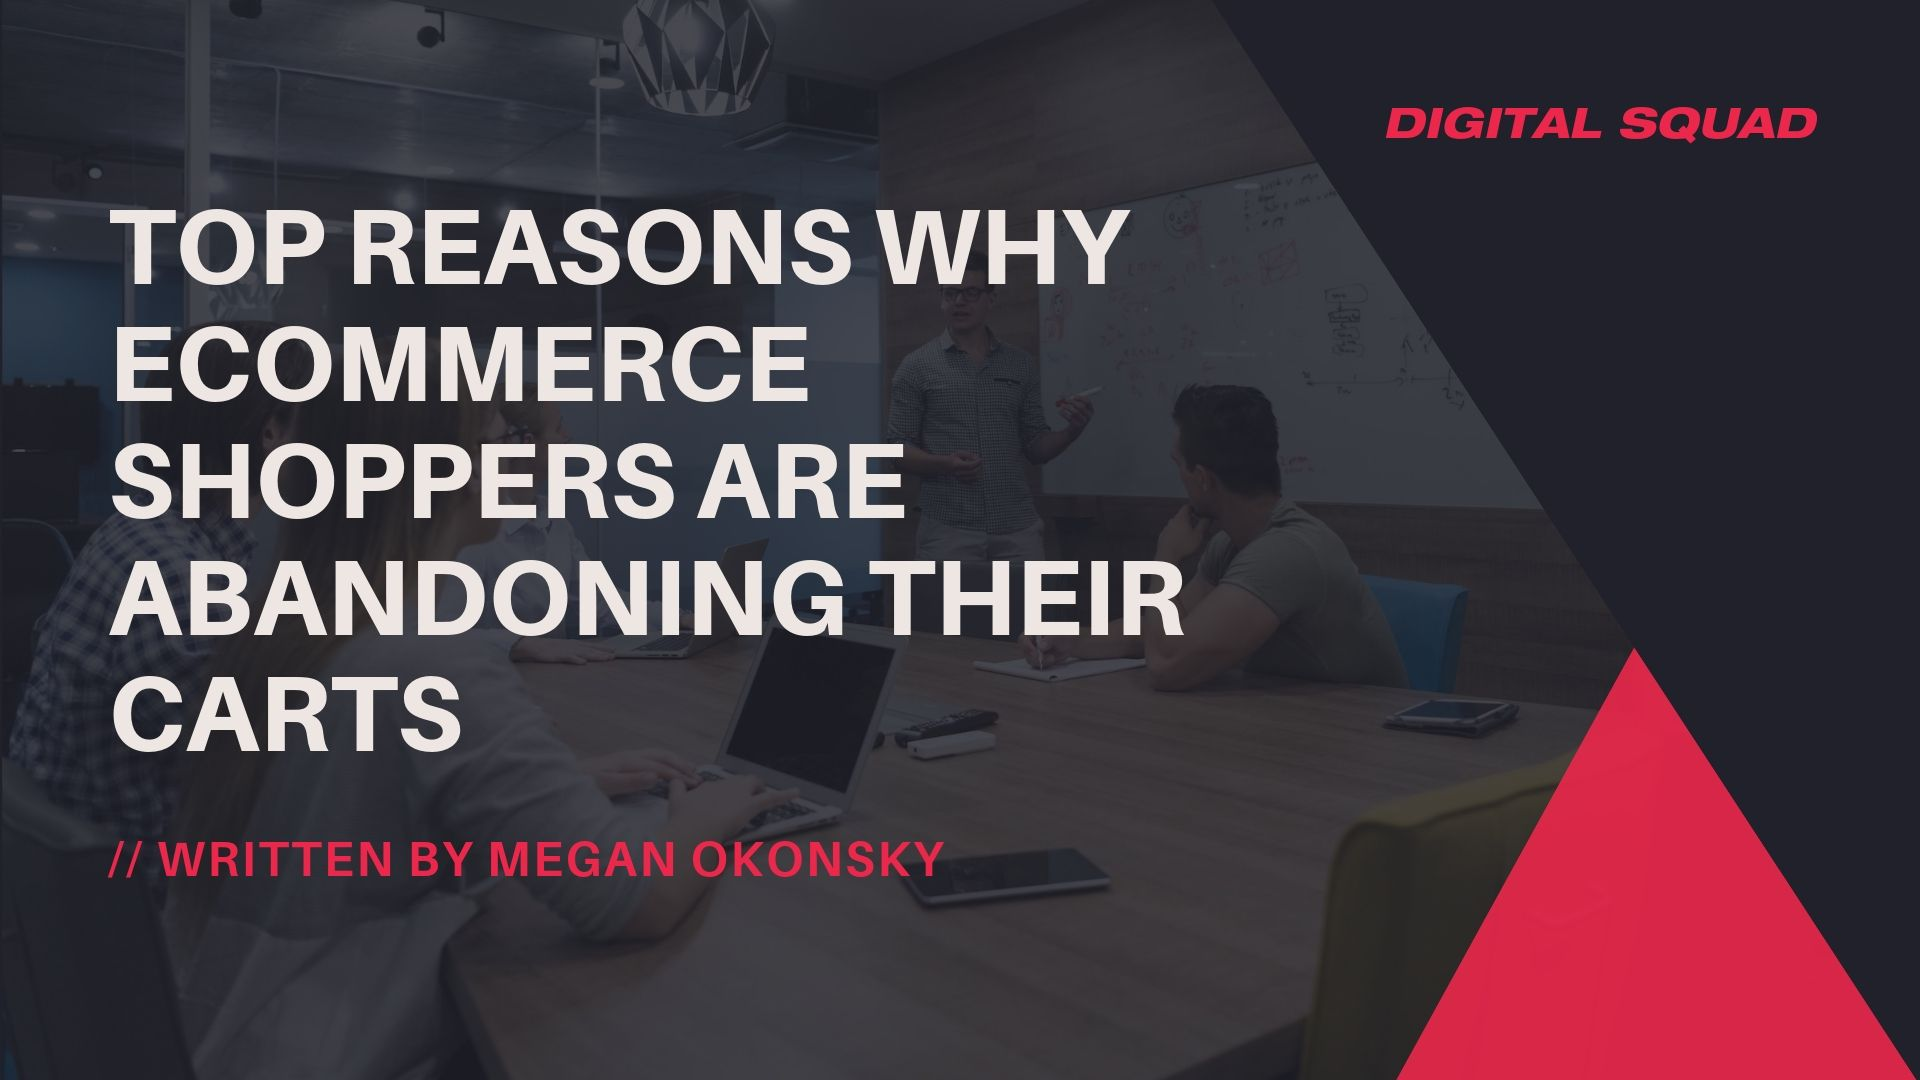 Ecommerce shoppers